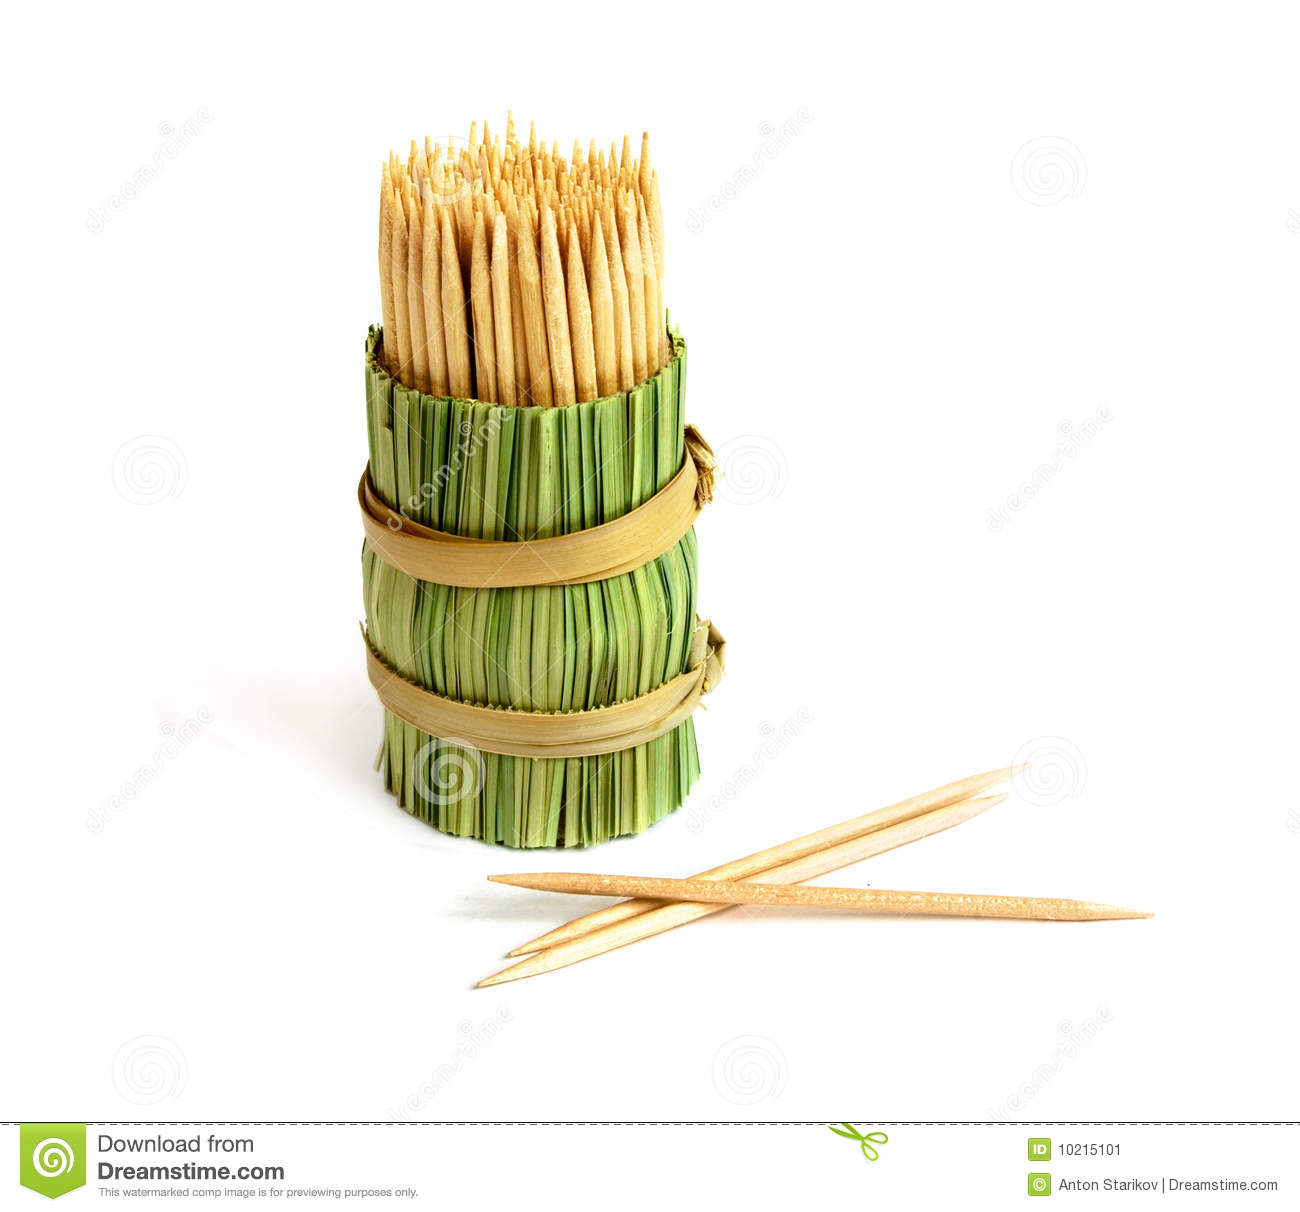 Toothpick shapes clipart.